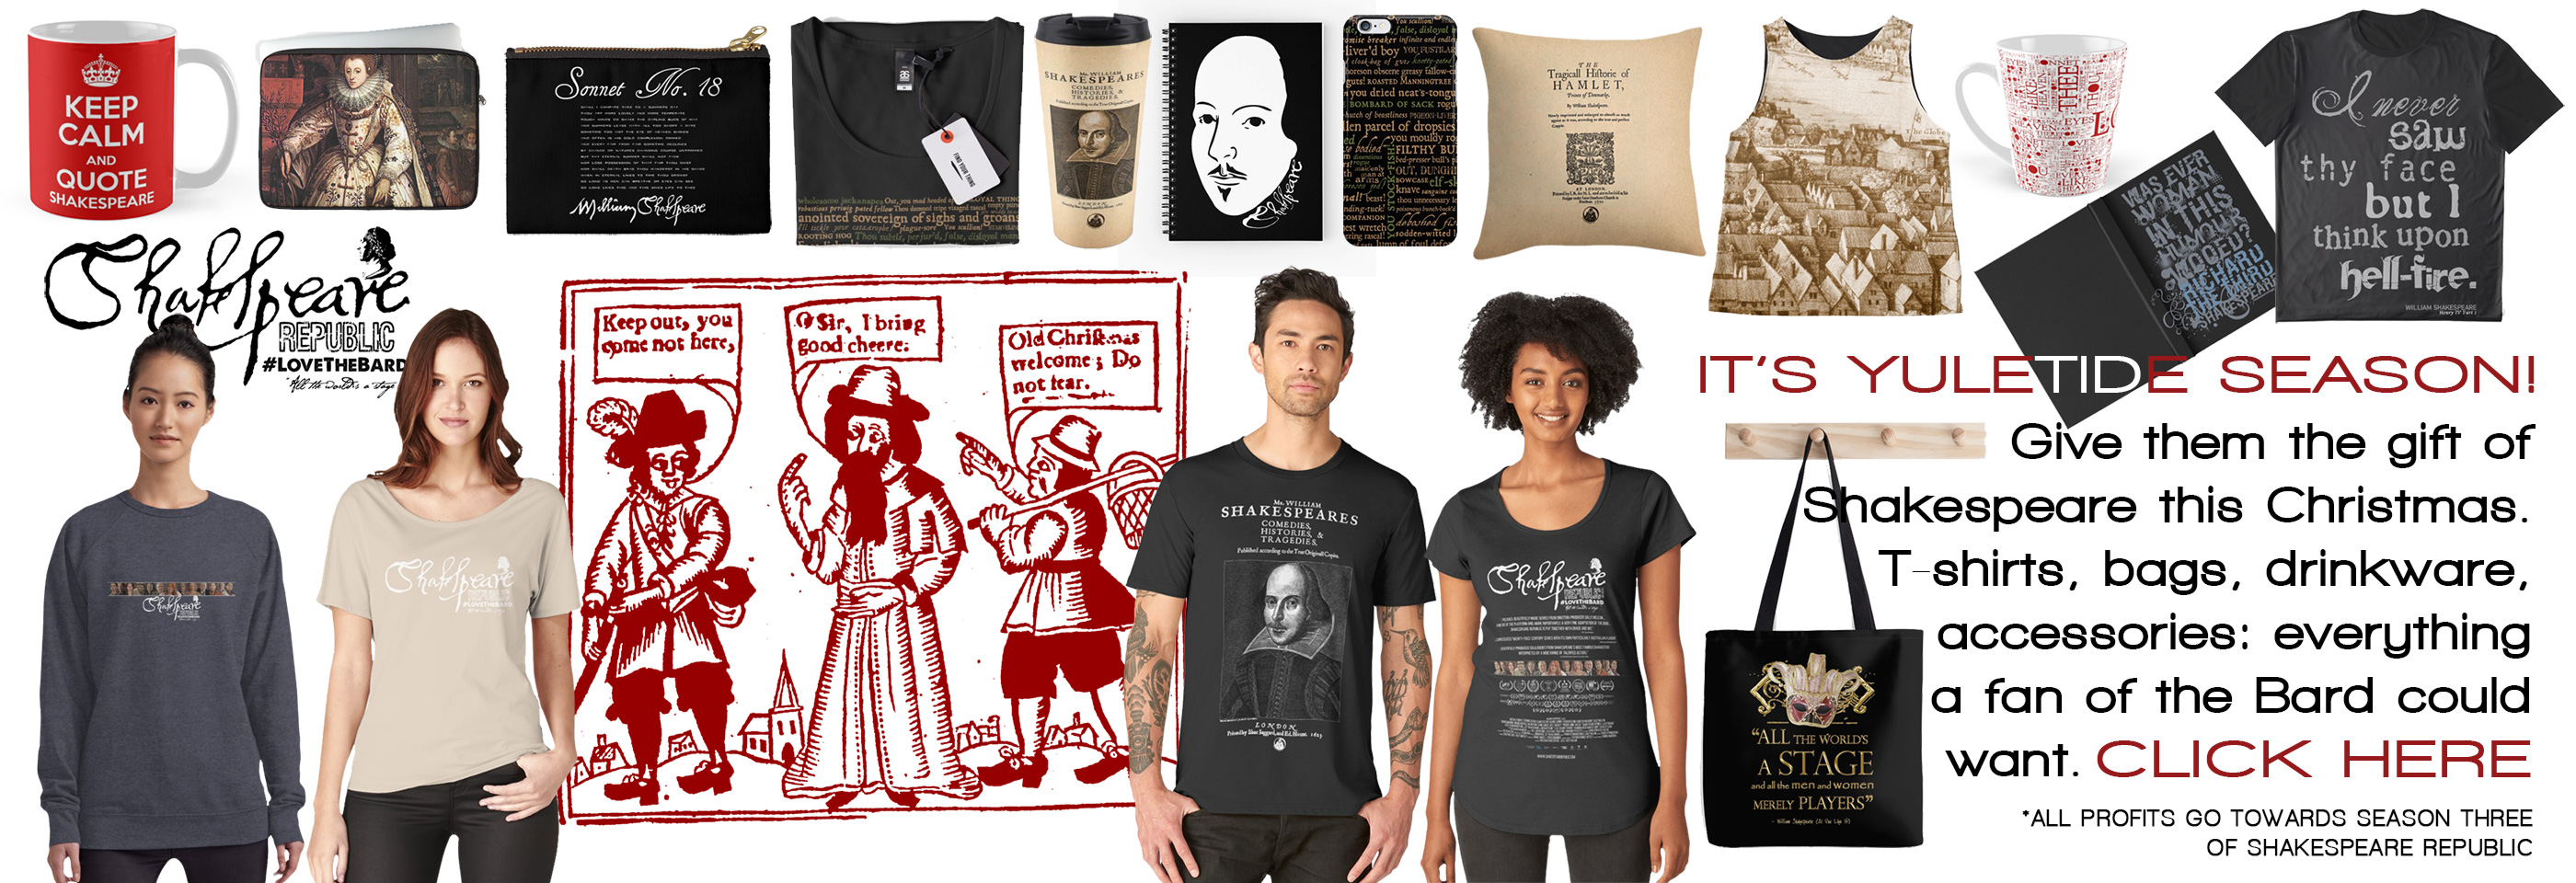 Do your Christmas shopping via Shakespeare Republic and support independent filmmakers at the same time!